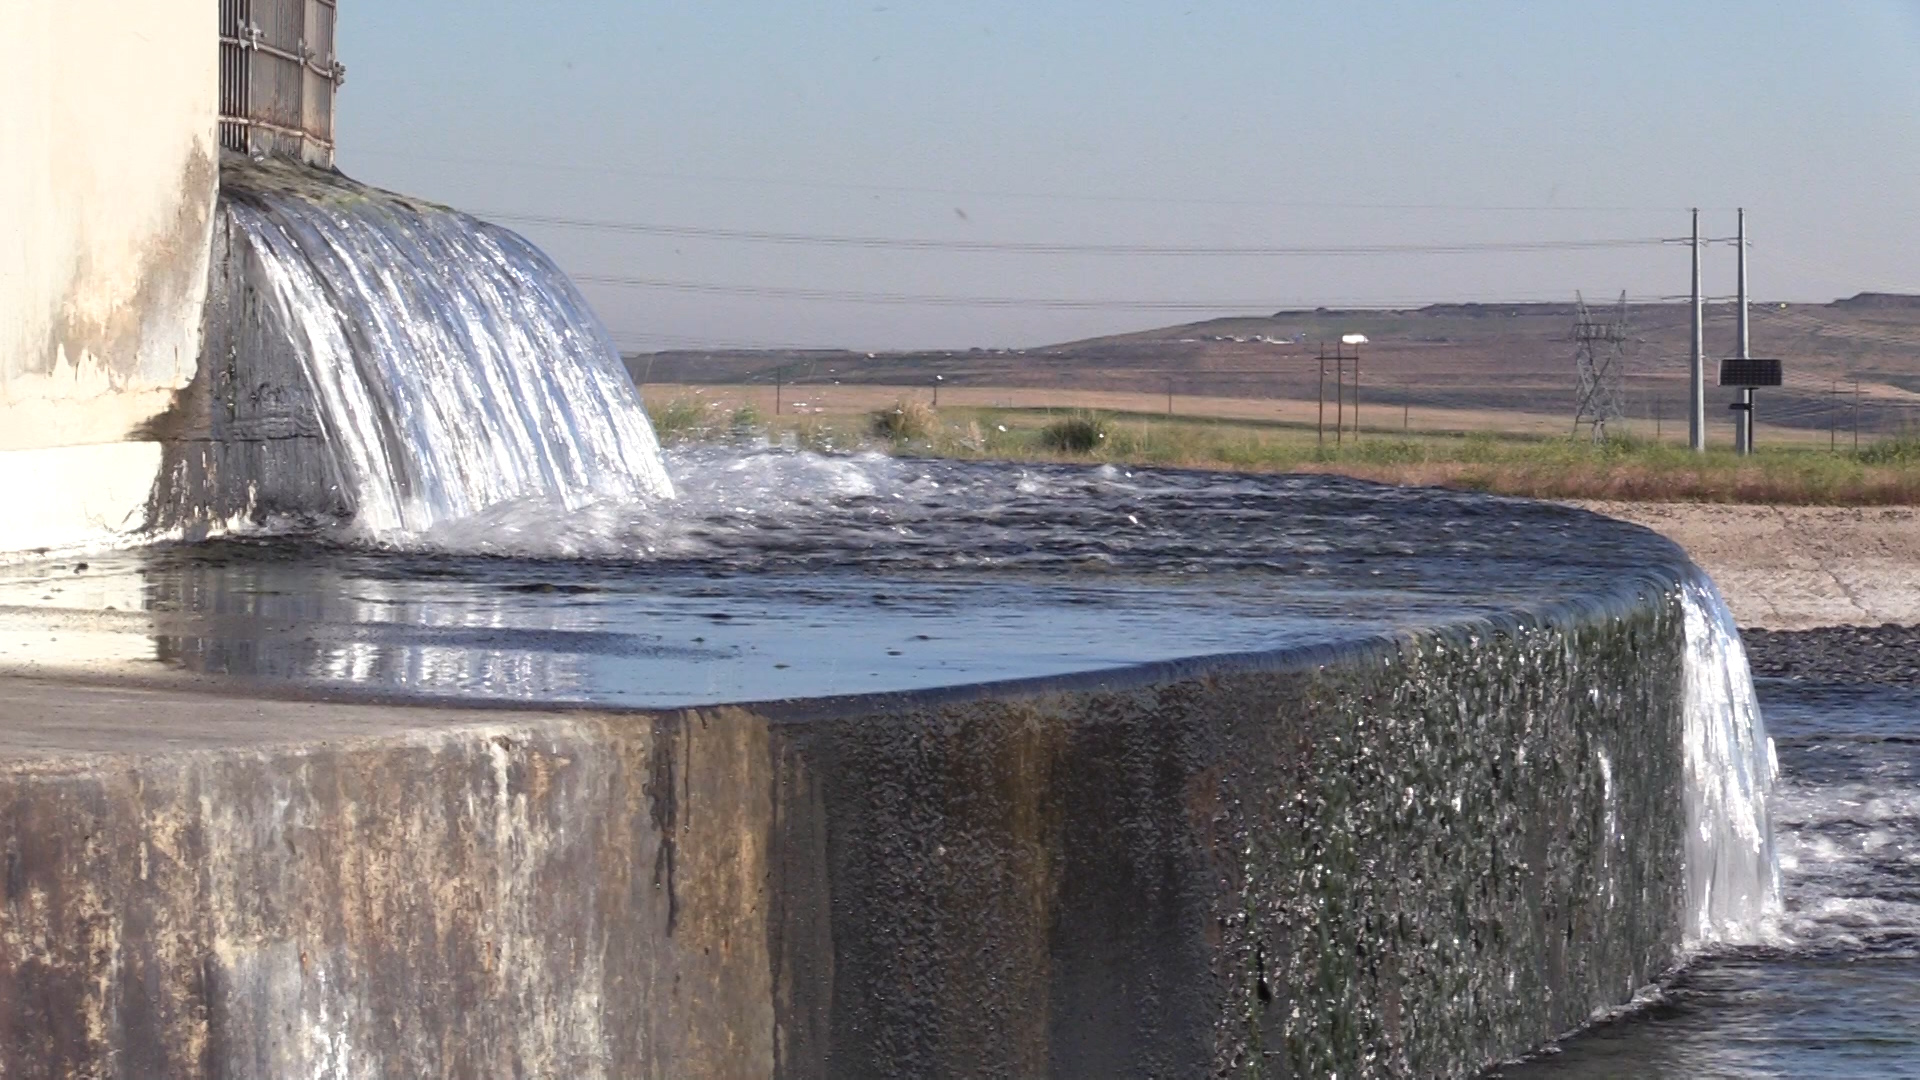 Communities across the West are looking at the WISE project as an example of how to create regional water-sharing partnerships.